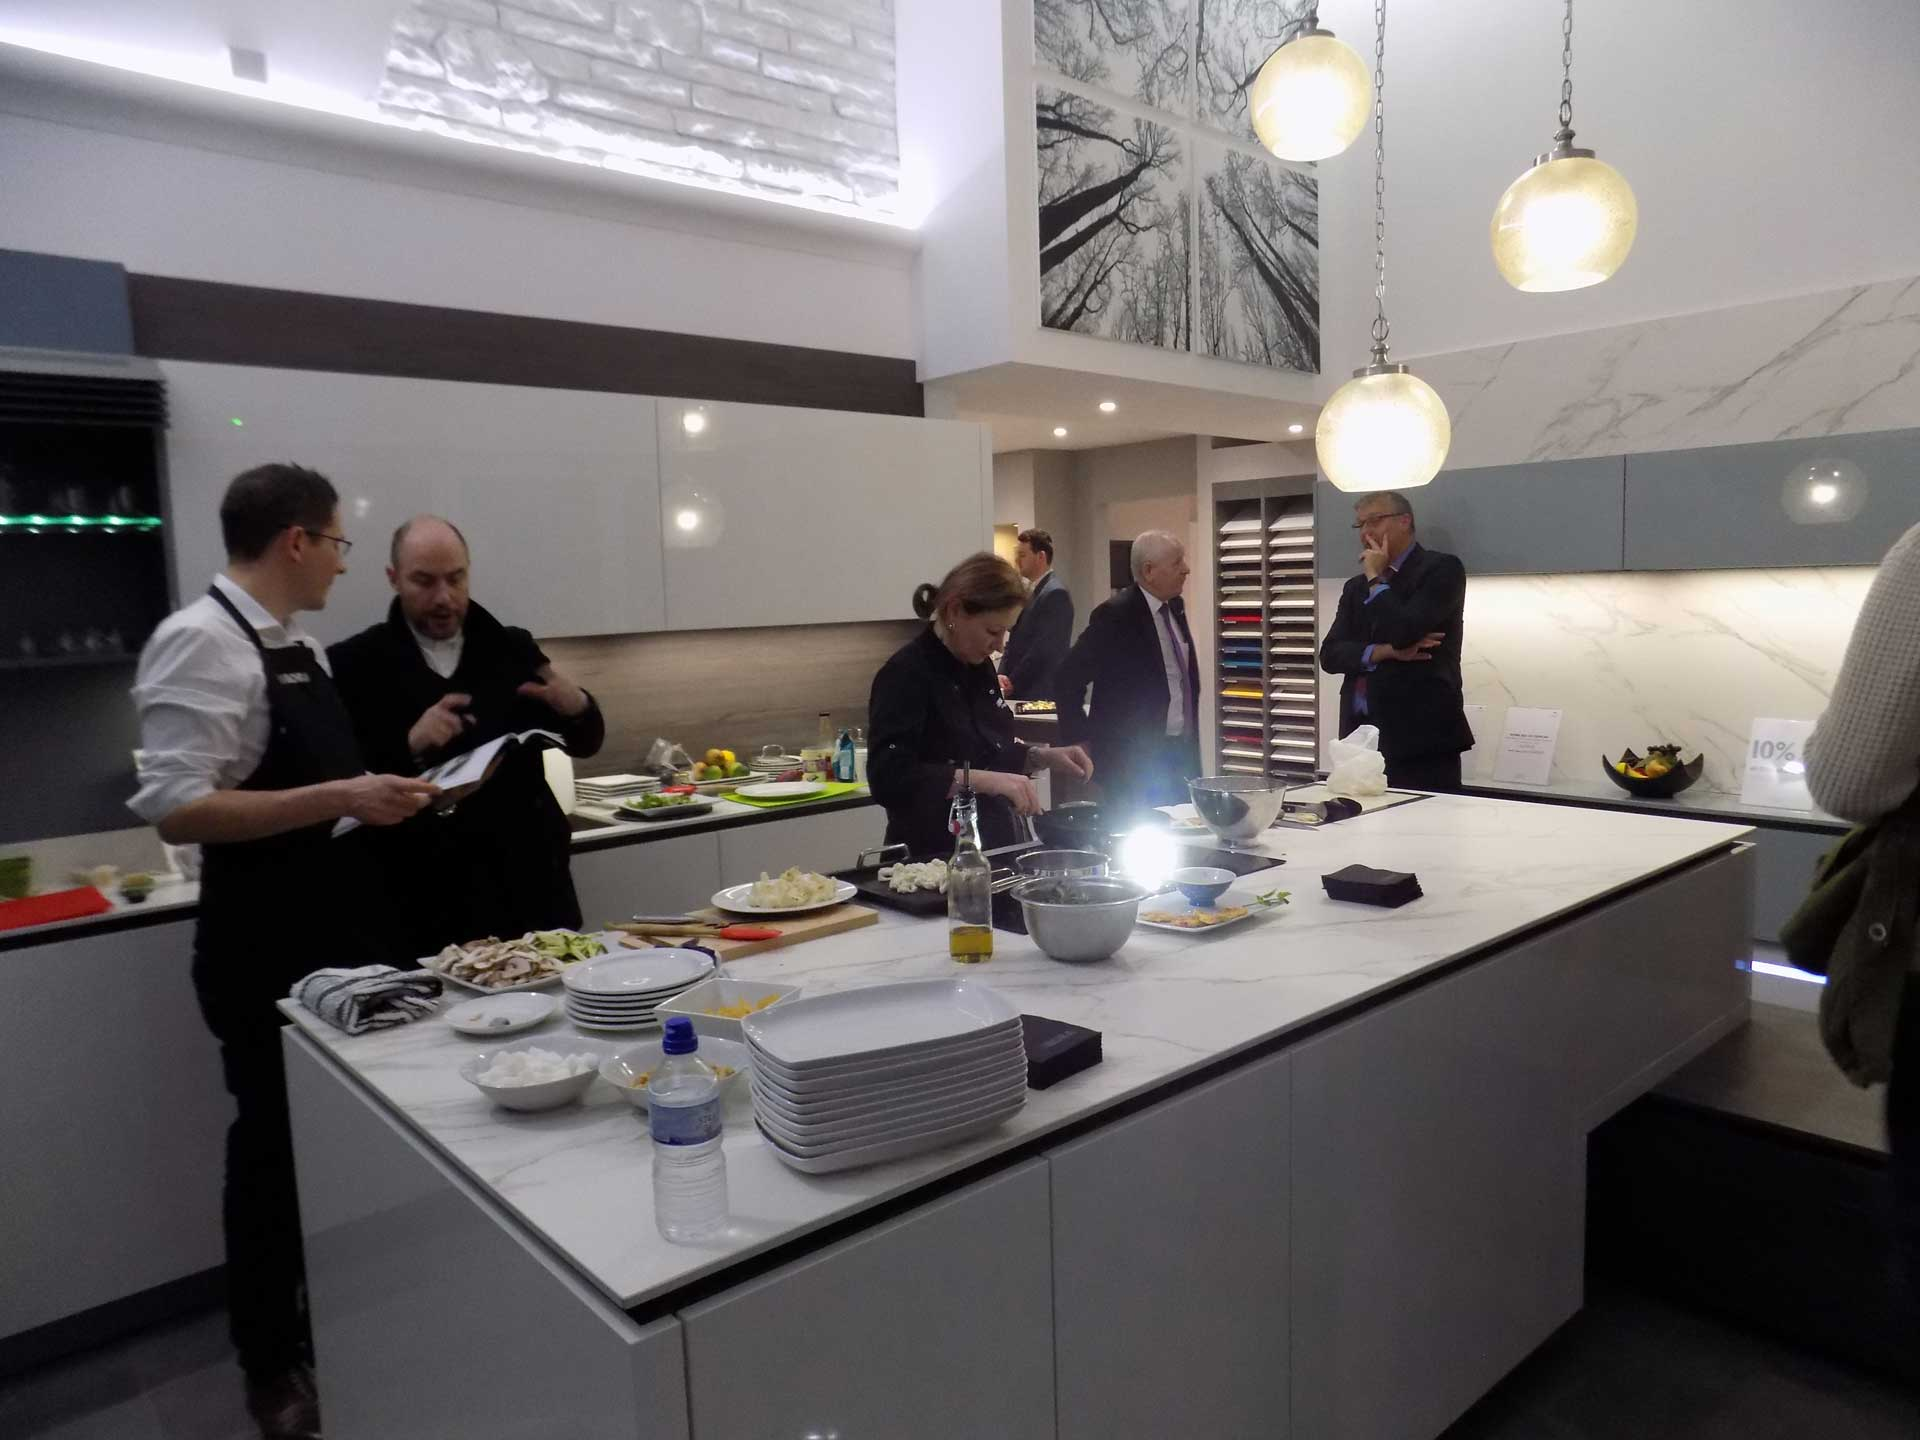 lb-kitchens-essex-events3.jpg